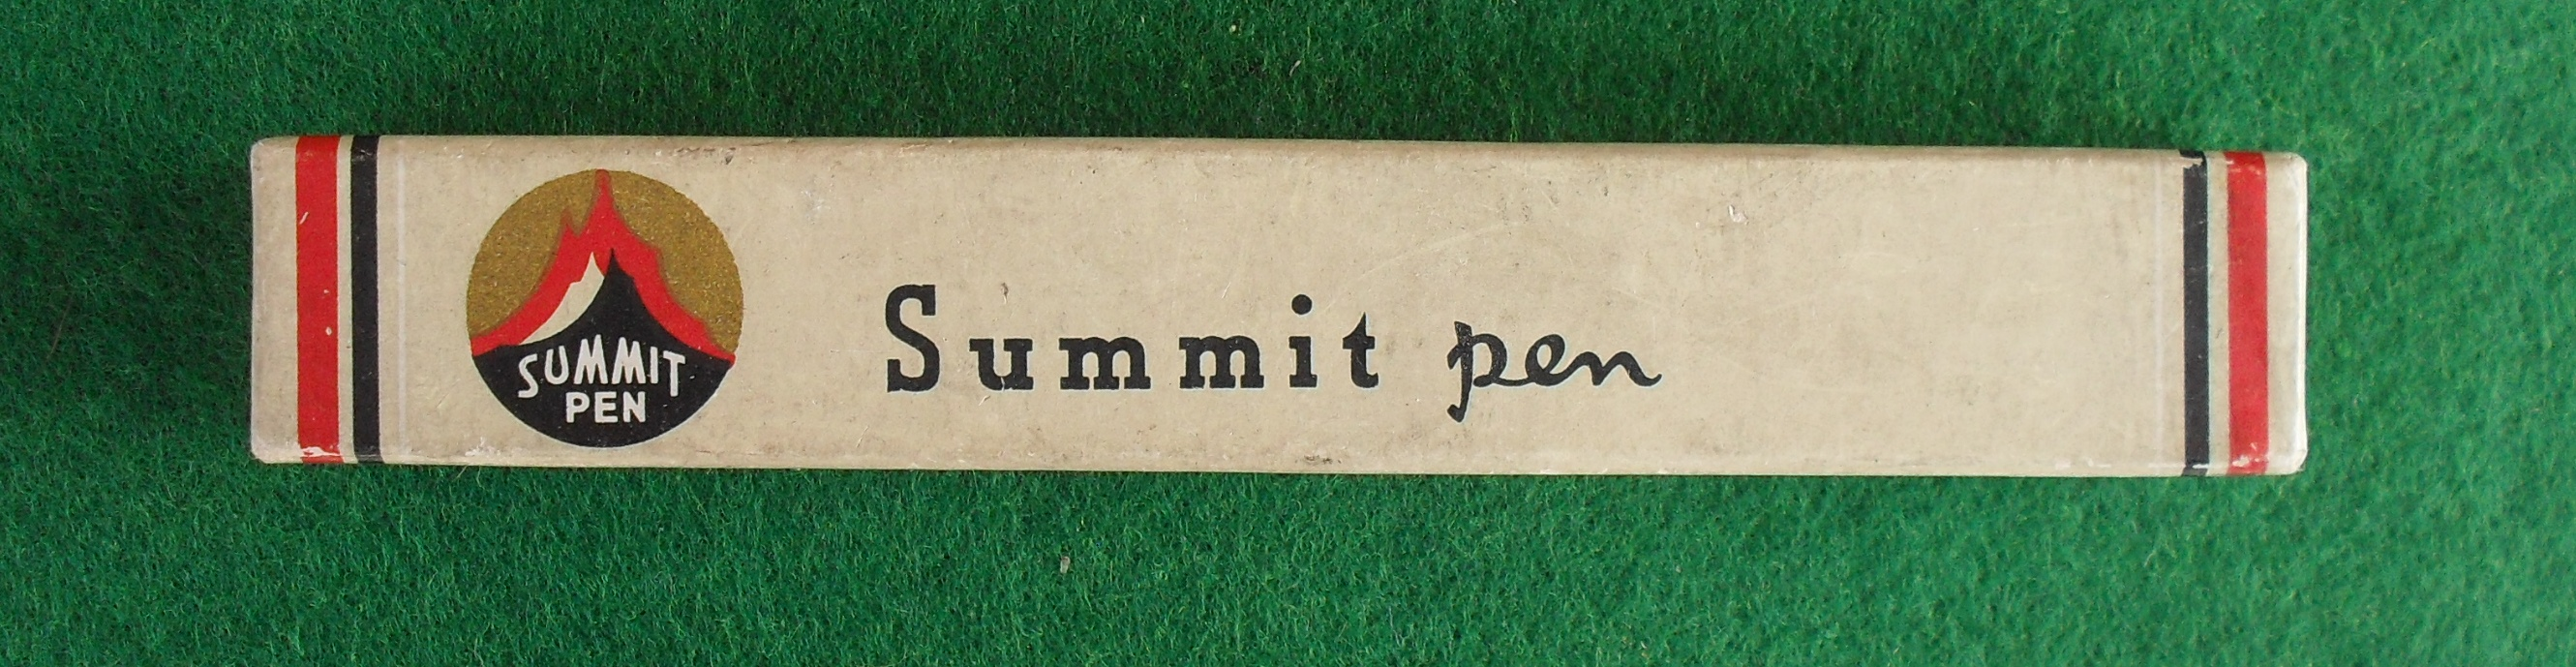 Summit Pen box - post WW2-top.JPG